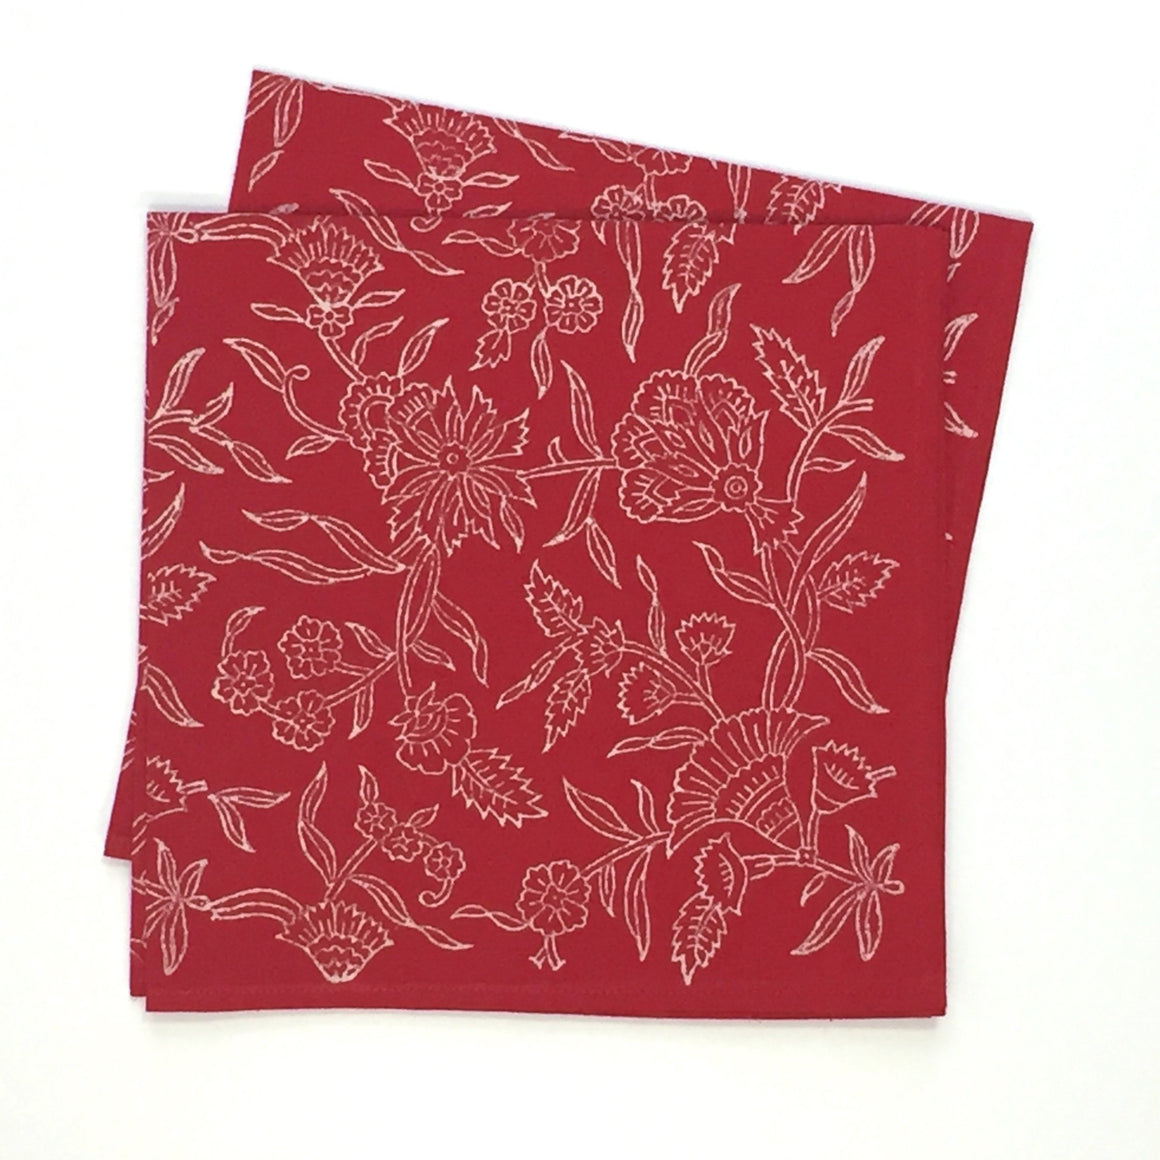 Napkin Set in Block Printed Organic Cotton - Holly Red Print